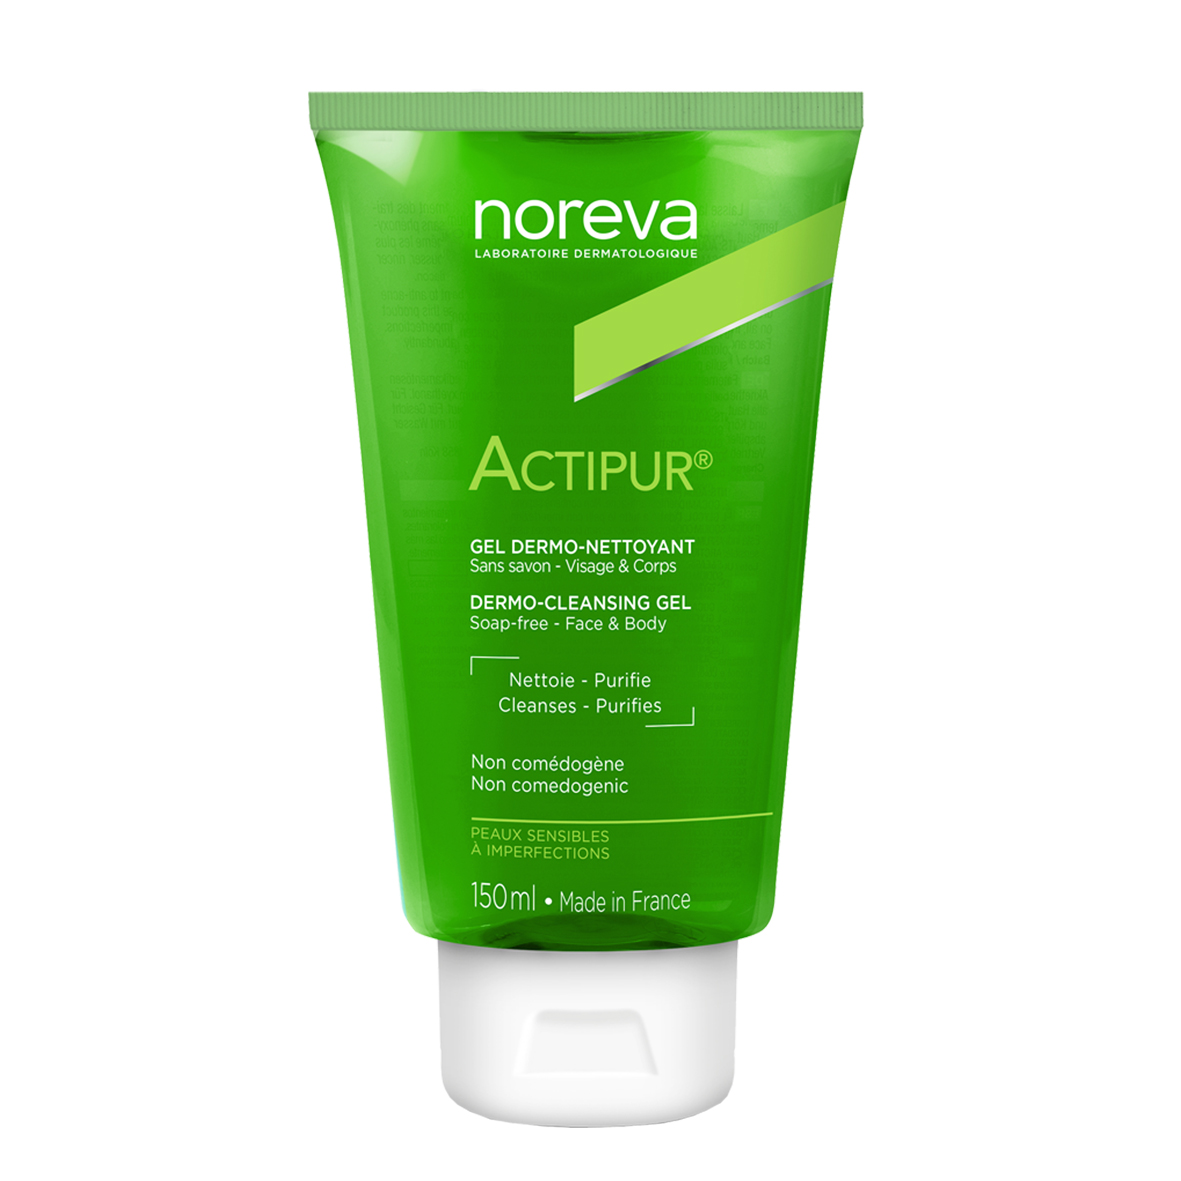 Actipur seboregulatorni gel 150 ml